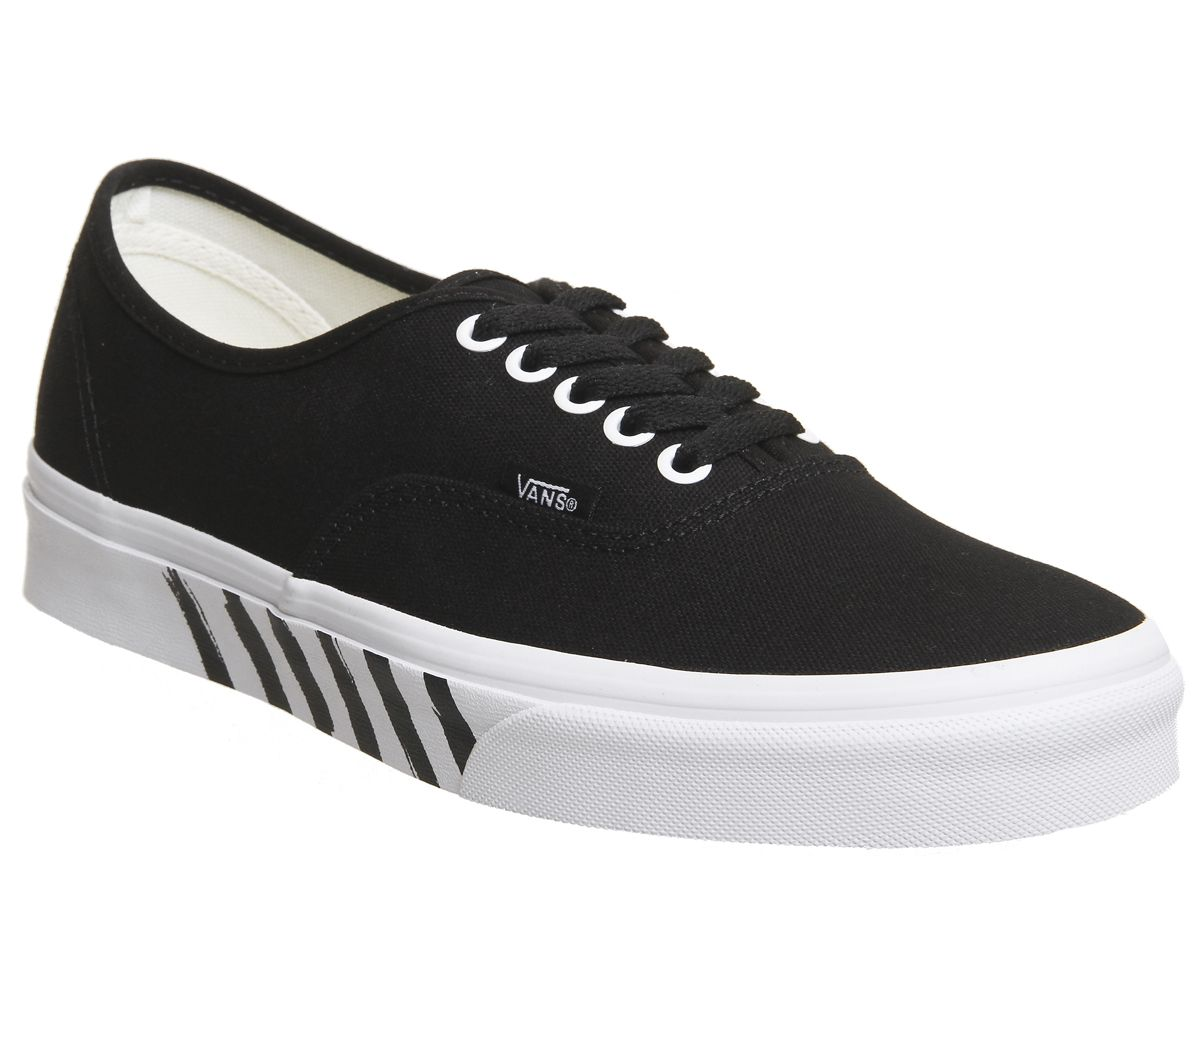 f5b174e7b7 Vans Authentic Trainers Black True White Stripe - Hers trainers